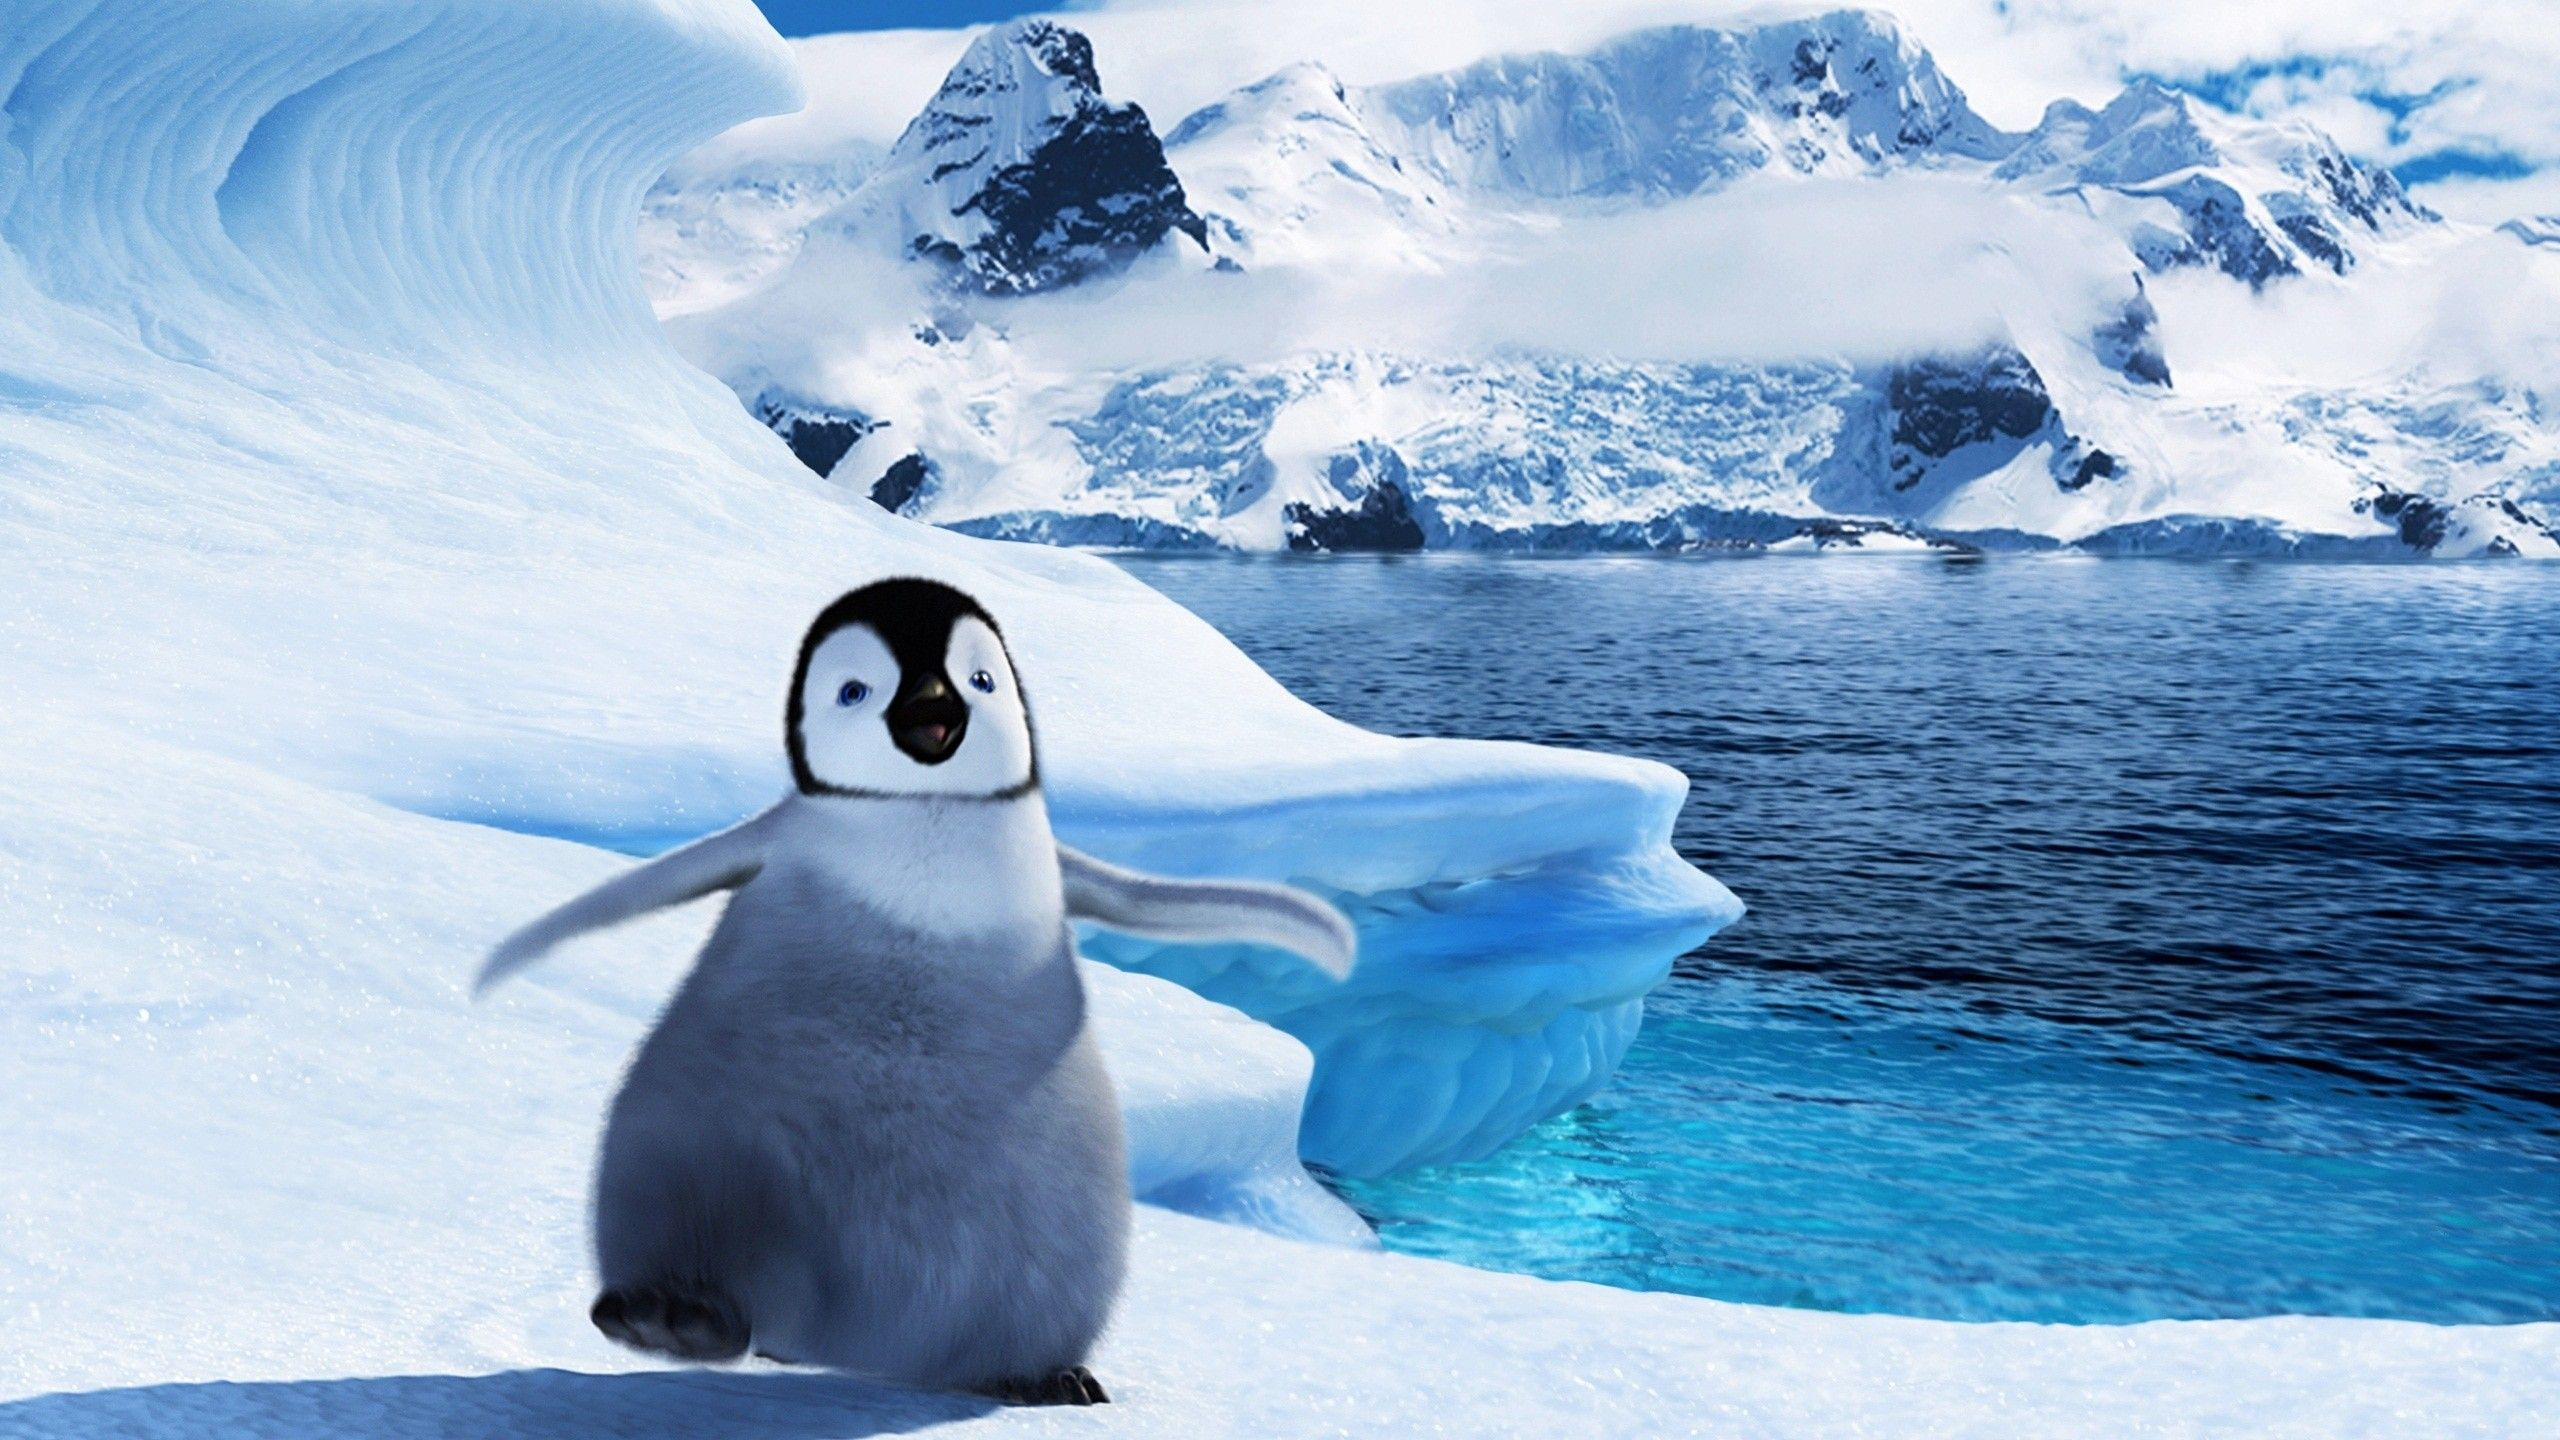 55 Penguin Wallpapers   Download at WallpaperBro 2560x1440